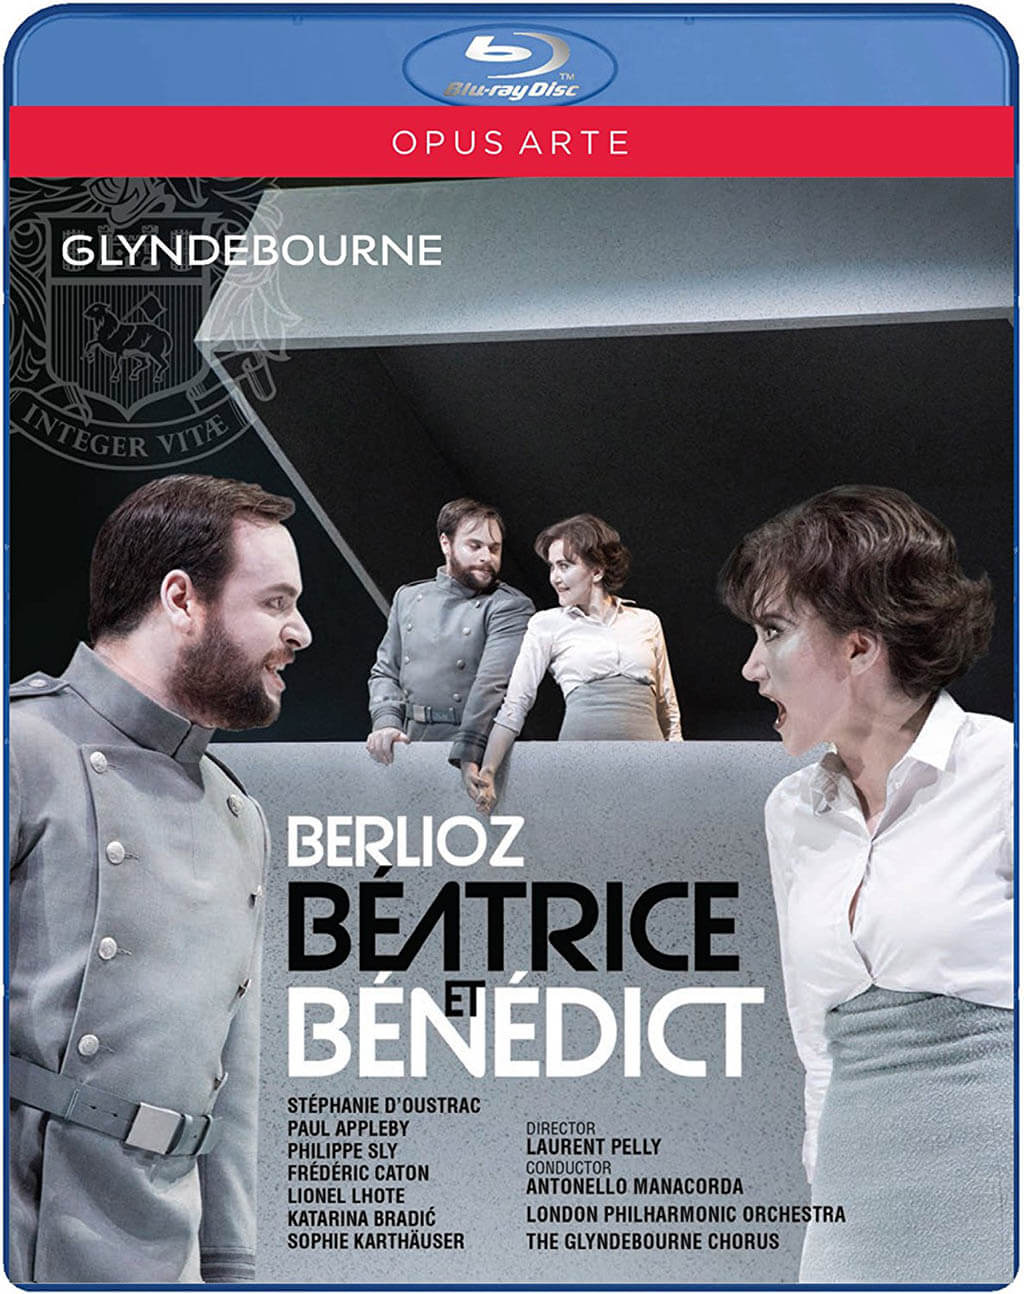 Berlioz: Béatrice et Bénédict. Glyndebourne Festival 2016. Stéphanie d'Oustras (Beatrice); Paul Appleby (Benedict); Sophie Karlhäuser (Hero); Philippe Sly (Claudio). London Philharmonic Orchestra/Antonello Manacorda. Director: Laurent Pelly. Opus Arte Blu-ray Disc OA BD7219 D. Total Time: 118:00.